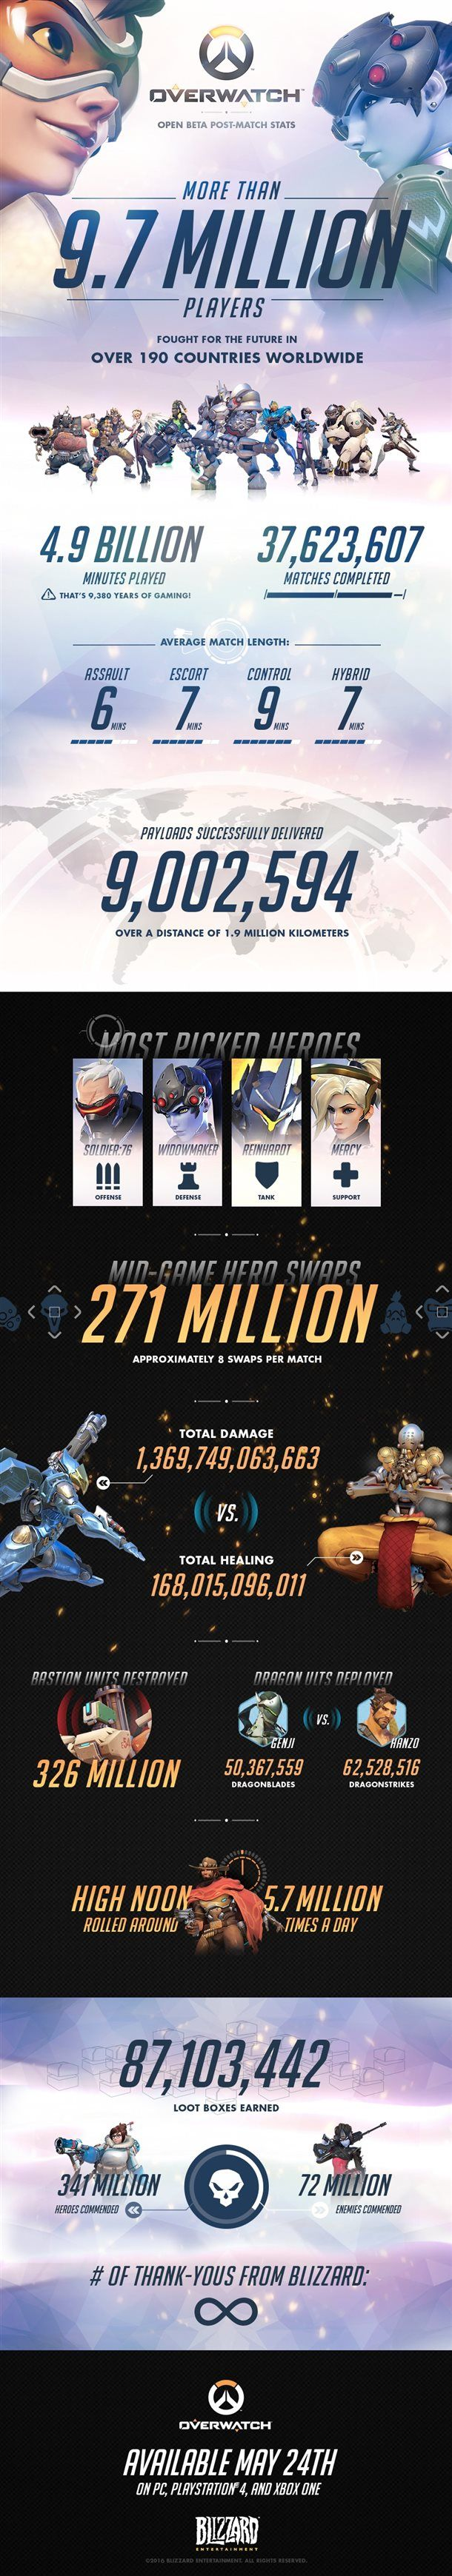 With over 9.7 million players, the Overwatch beta was a huge success for Blizzard.